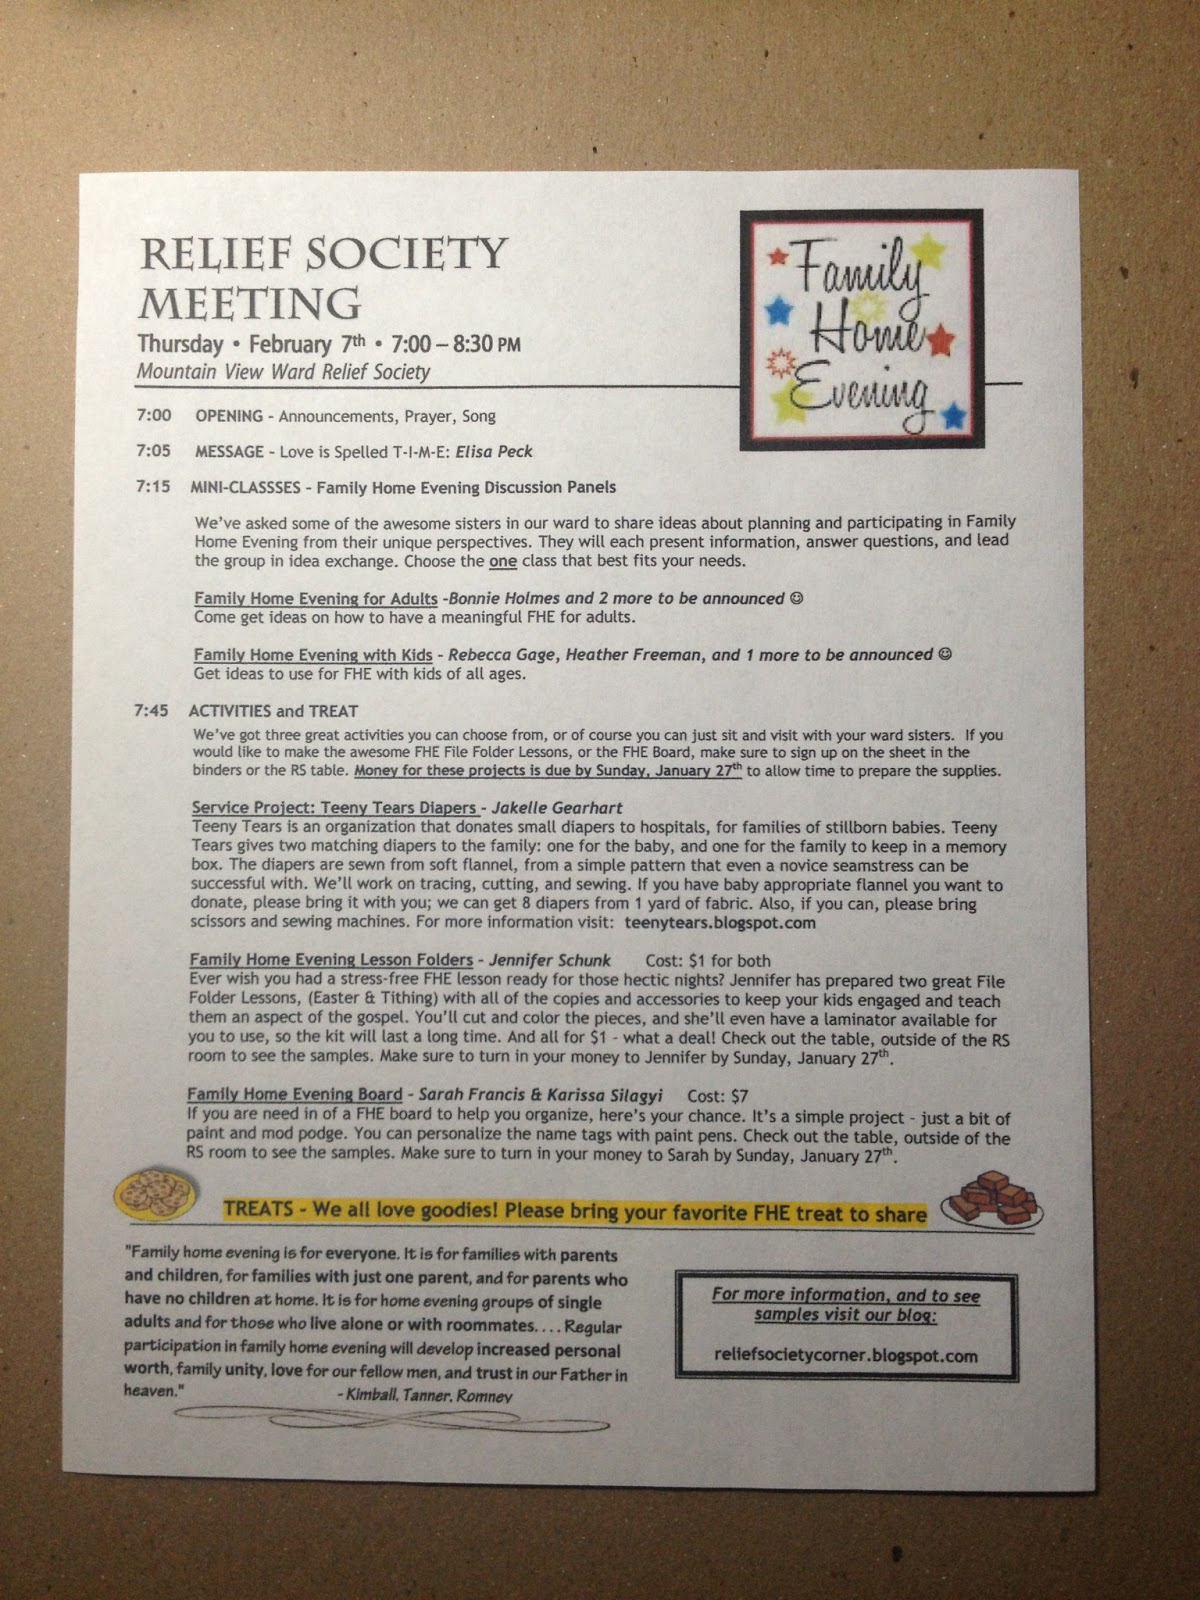 relief society corner relief society meeting for february